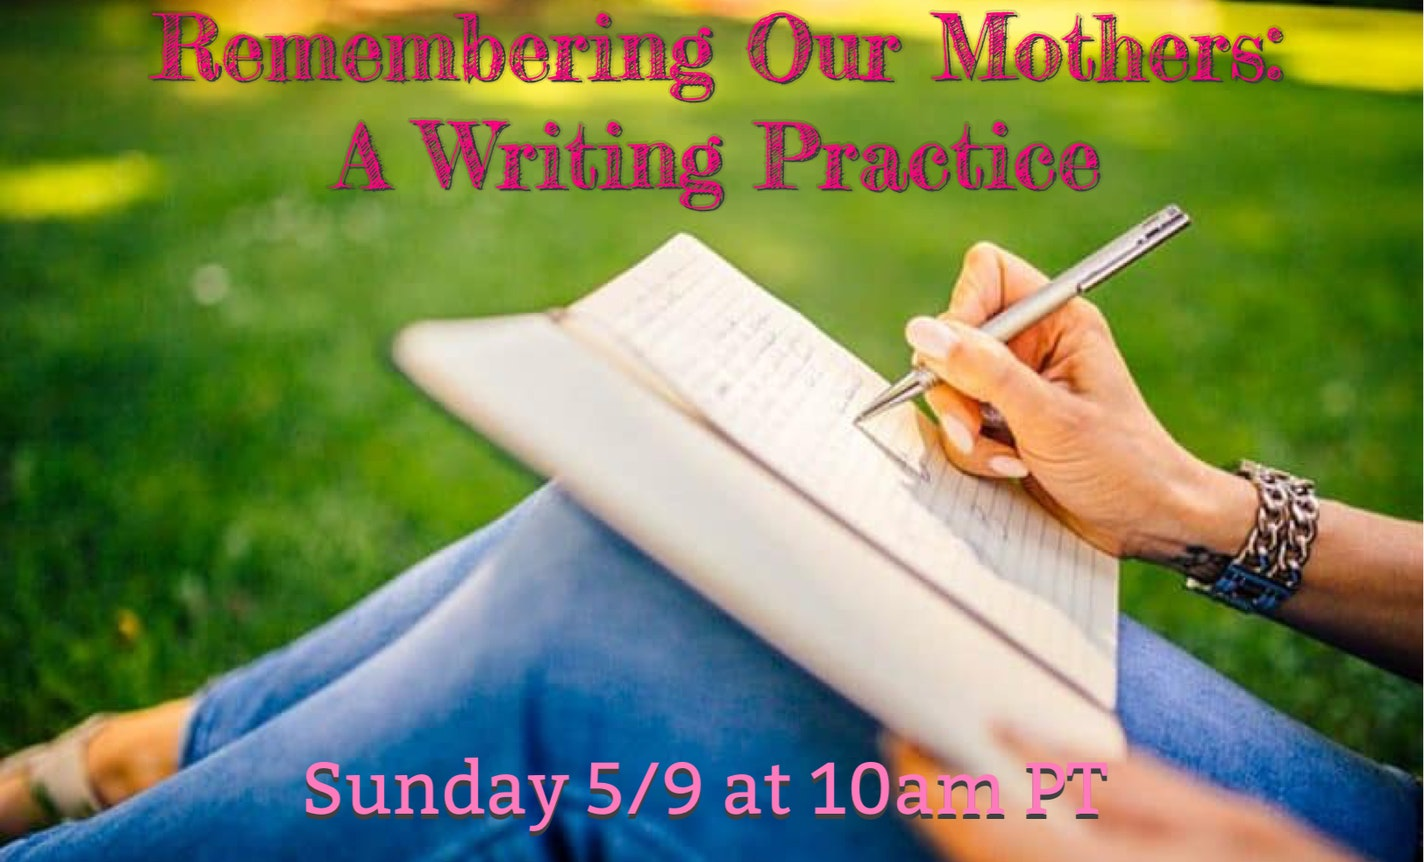 Remembering Our Mothers: A Writing Practice